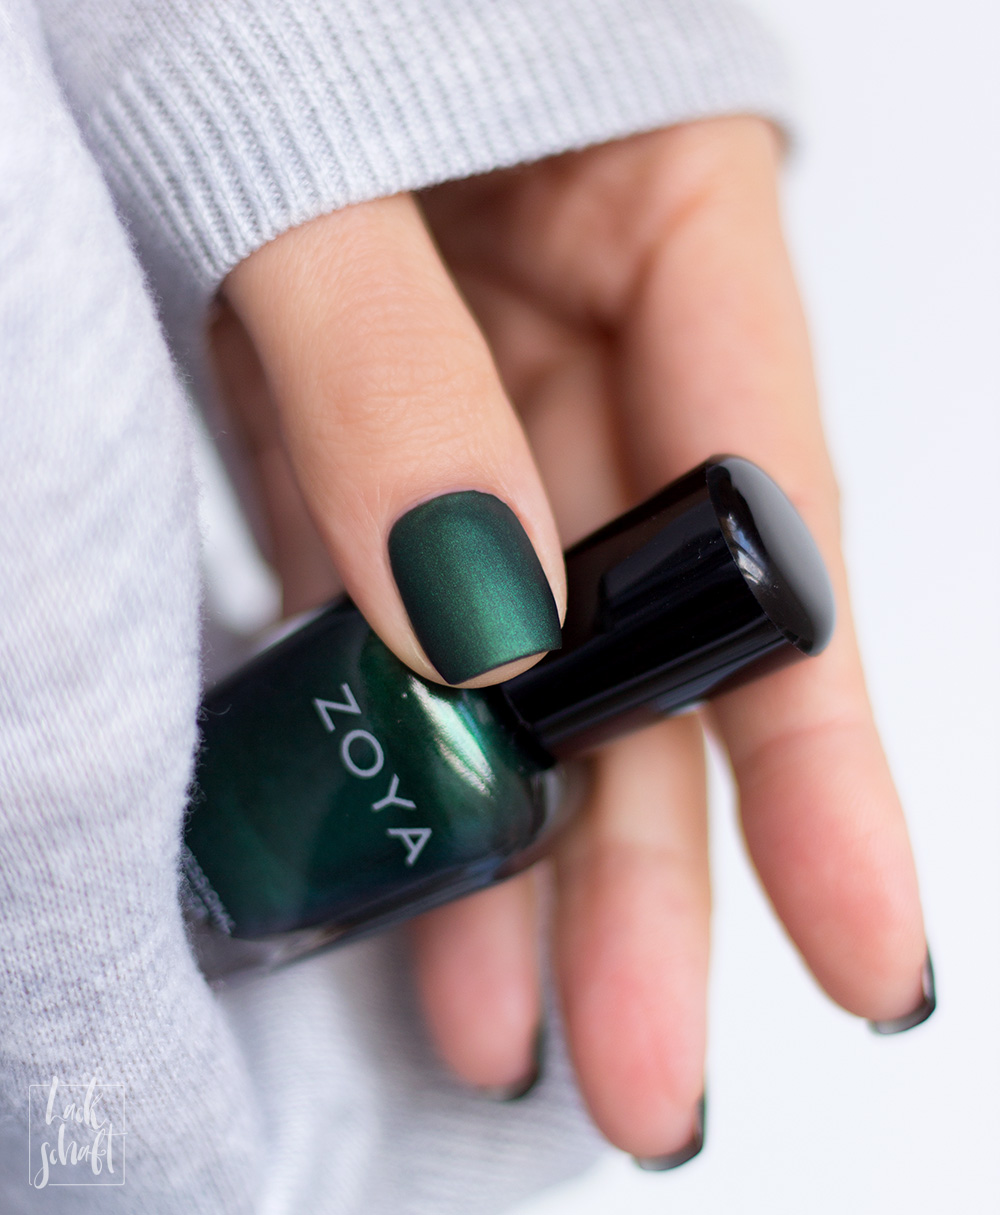 Zoya-Intriguing-Collection-Regina-Green-Nailpolish-Nagellack-Grün-Swatch-matt-5